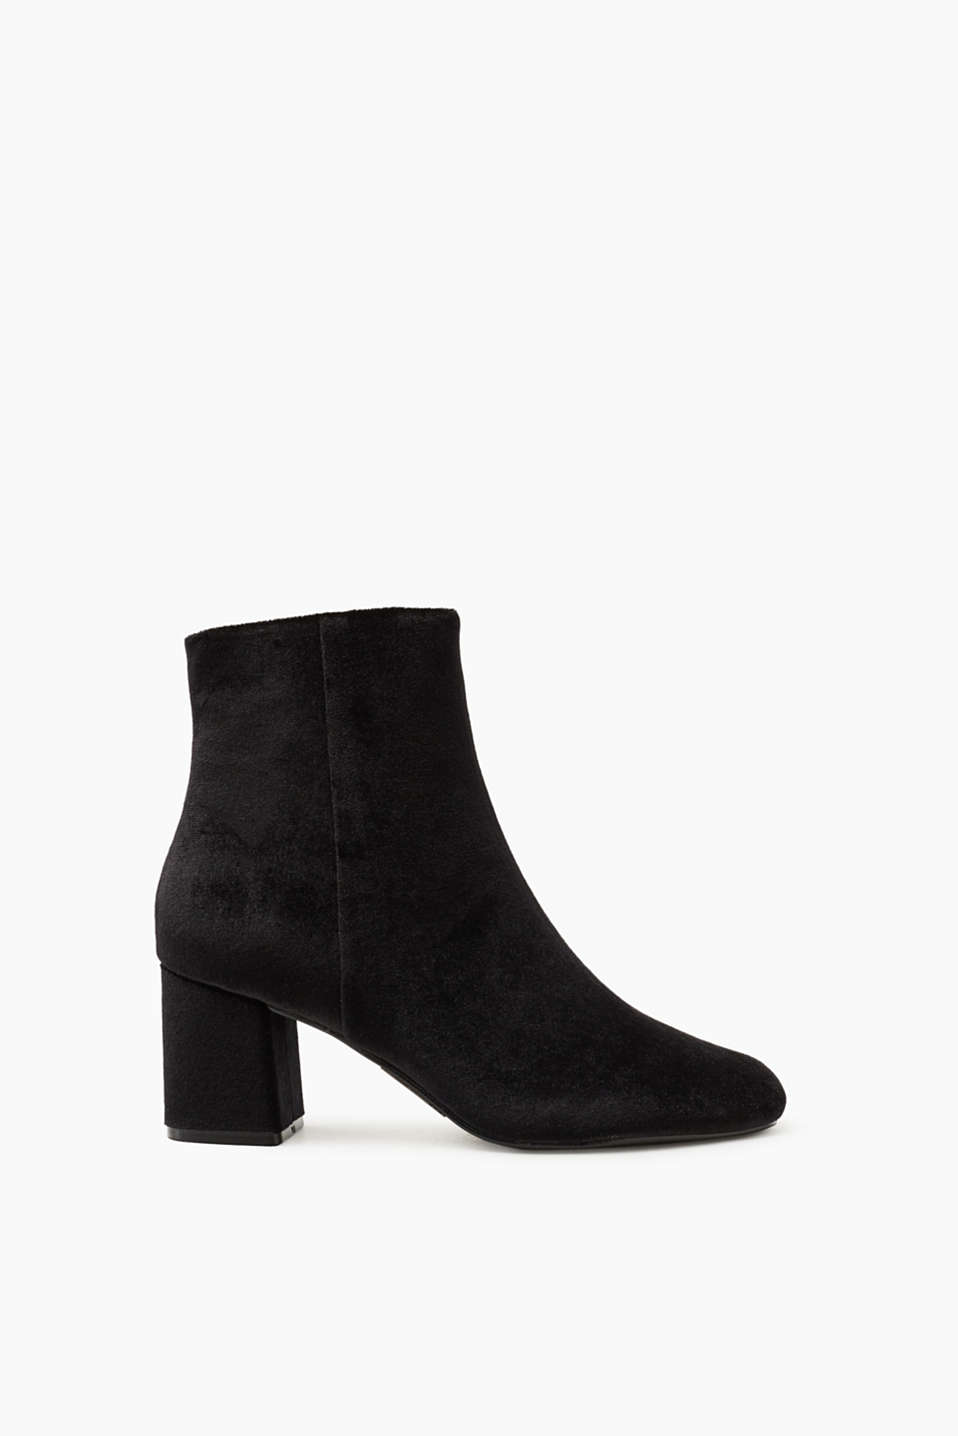 Esprit - Soft cotton velvet boots